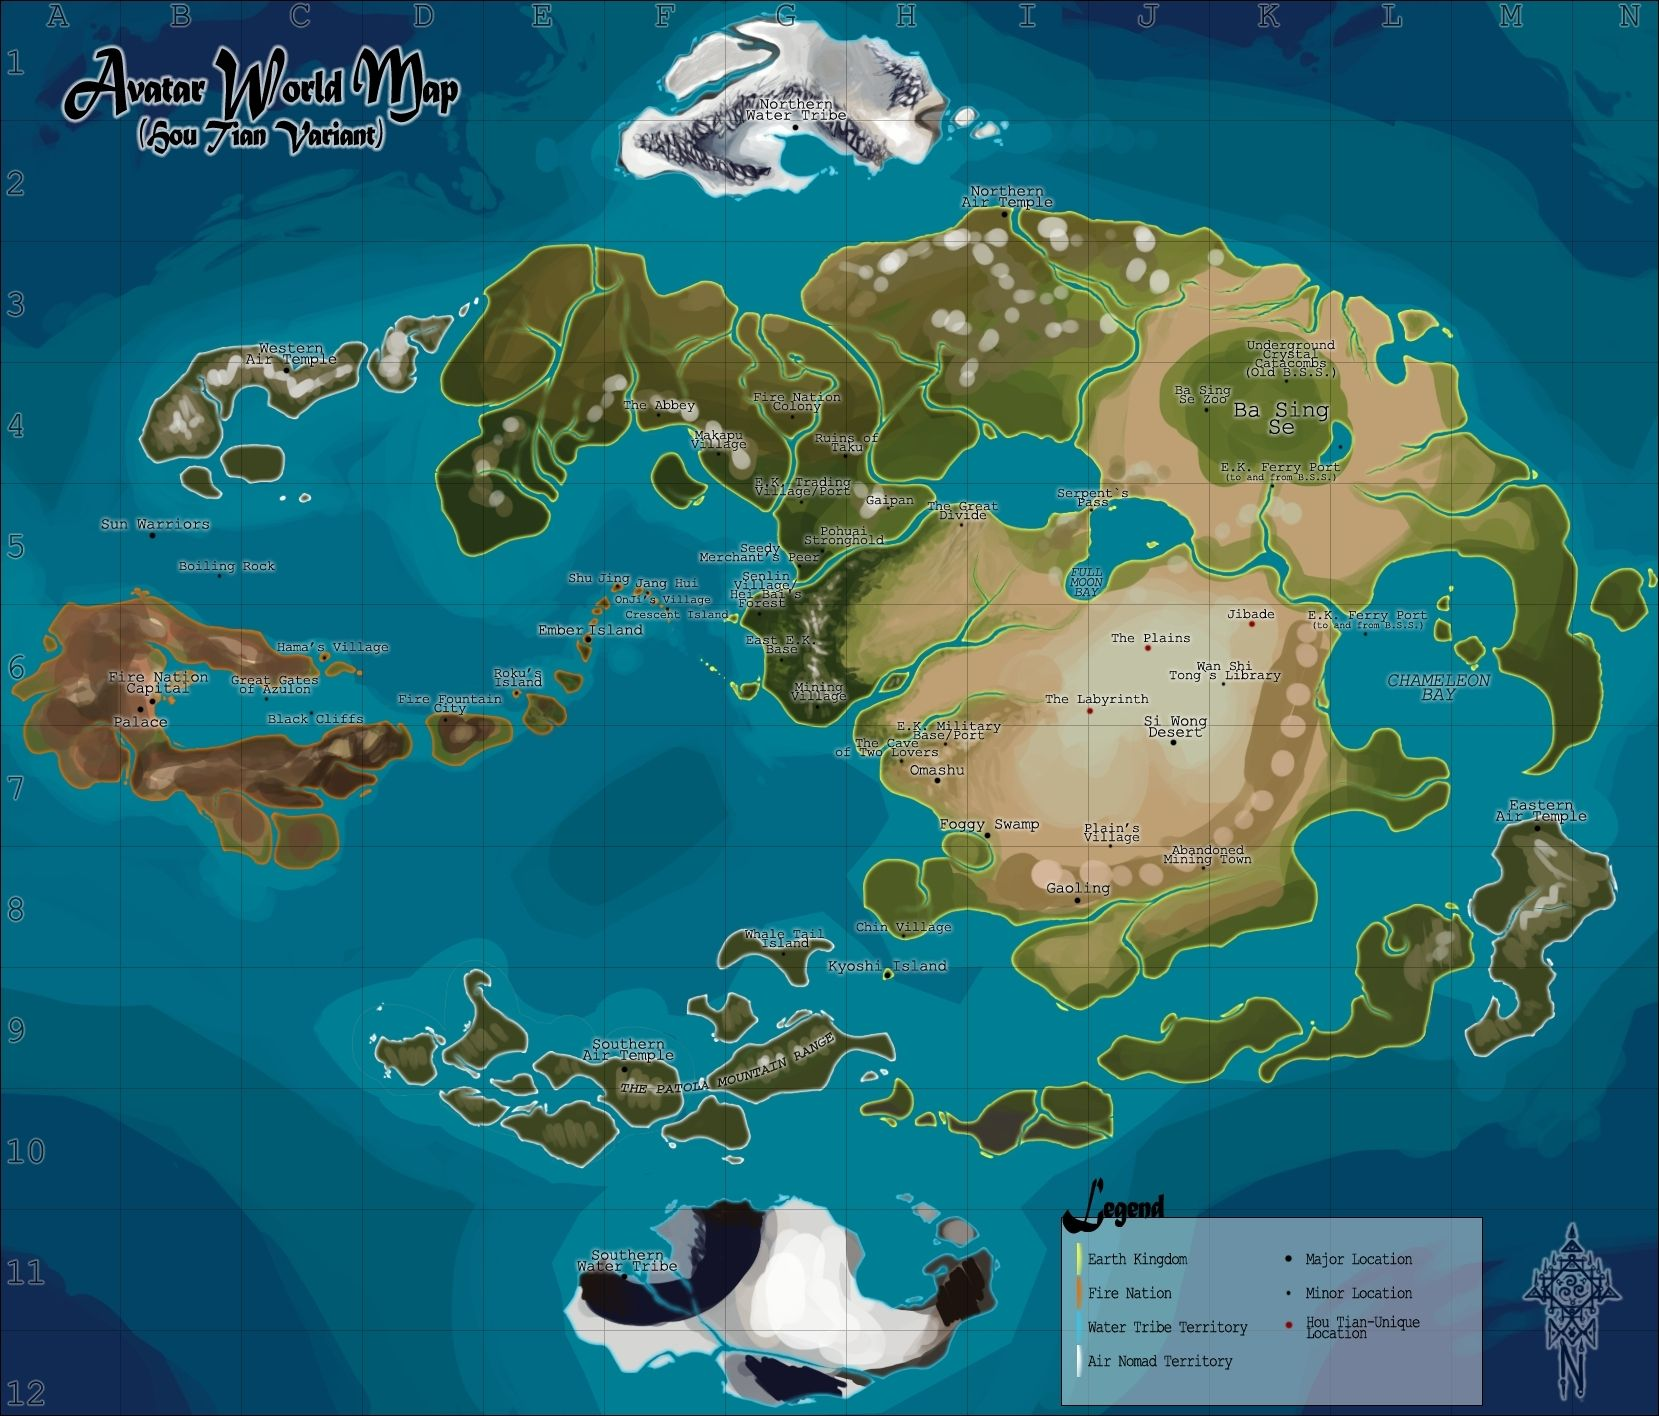 Avatar the last airbender avatar world map avatar the last avatar the last airbender avatar world map publicscrutiny Image collections